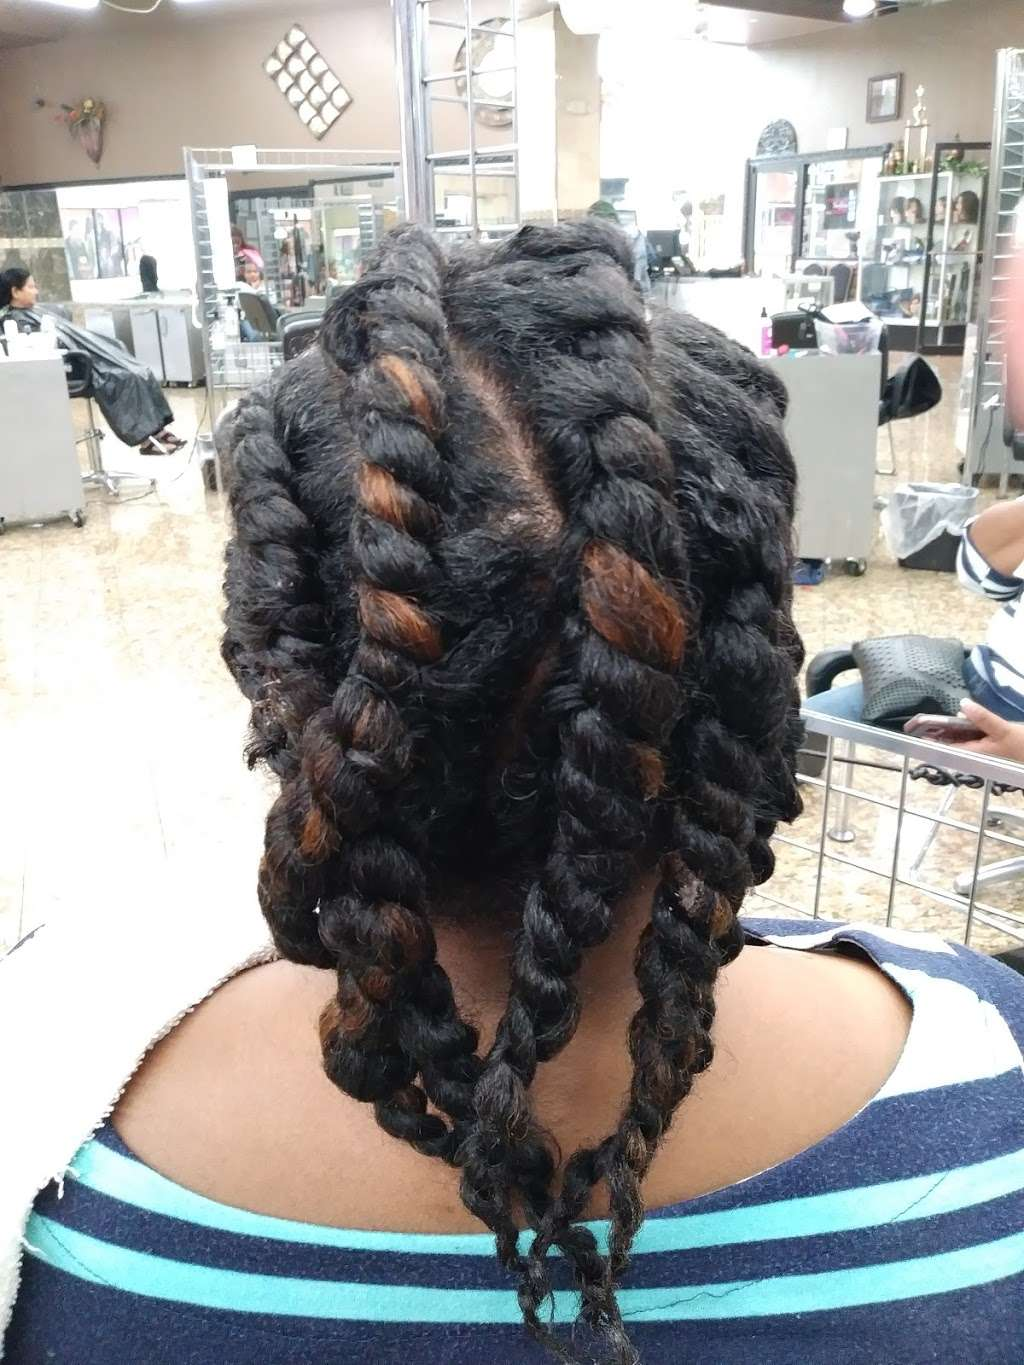 Born Envied Extensions Salons - hair care  | Photo 6 of 10 | Address: 3114 Idaho Ave, Dallas, TX 75216, USA | Phone: (682) 701-0788